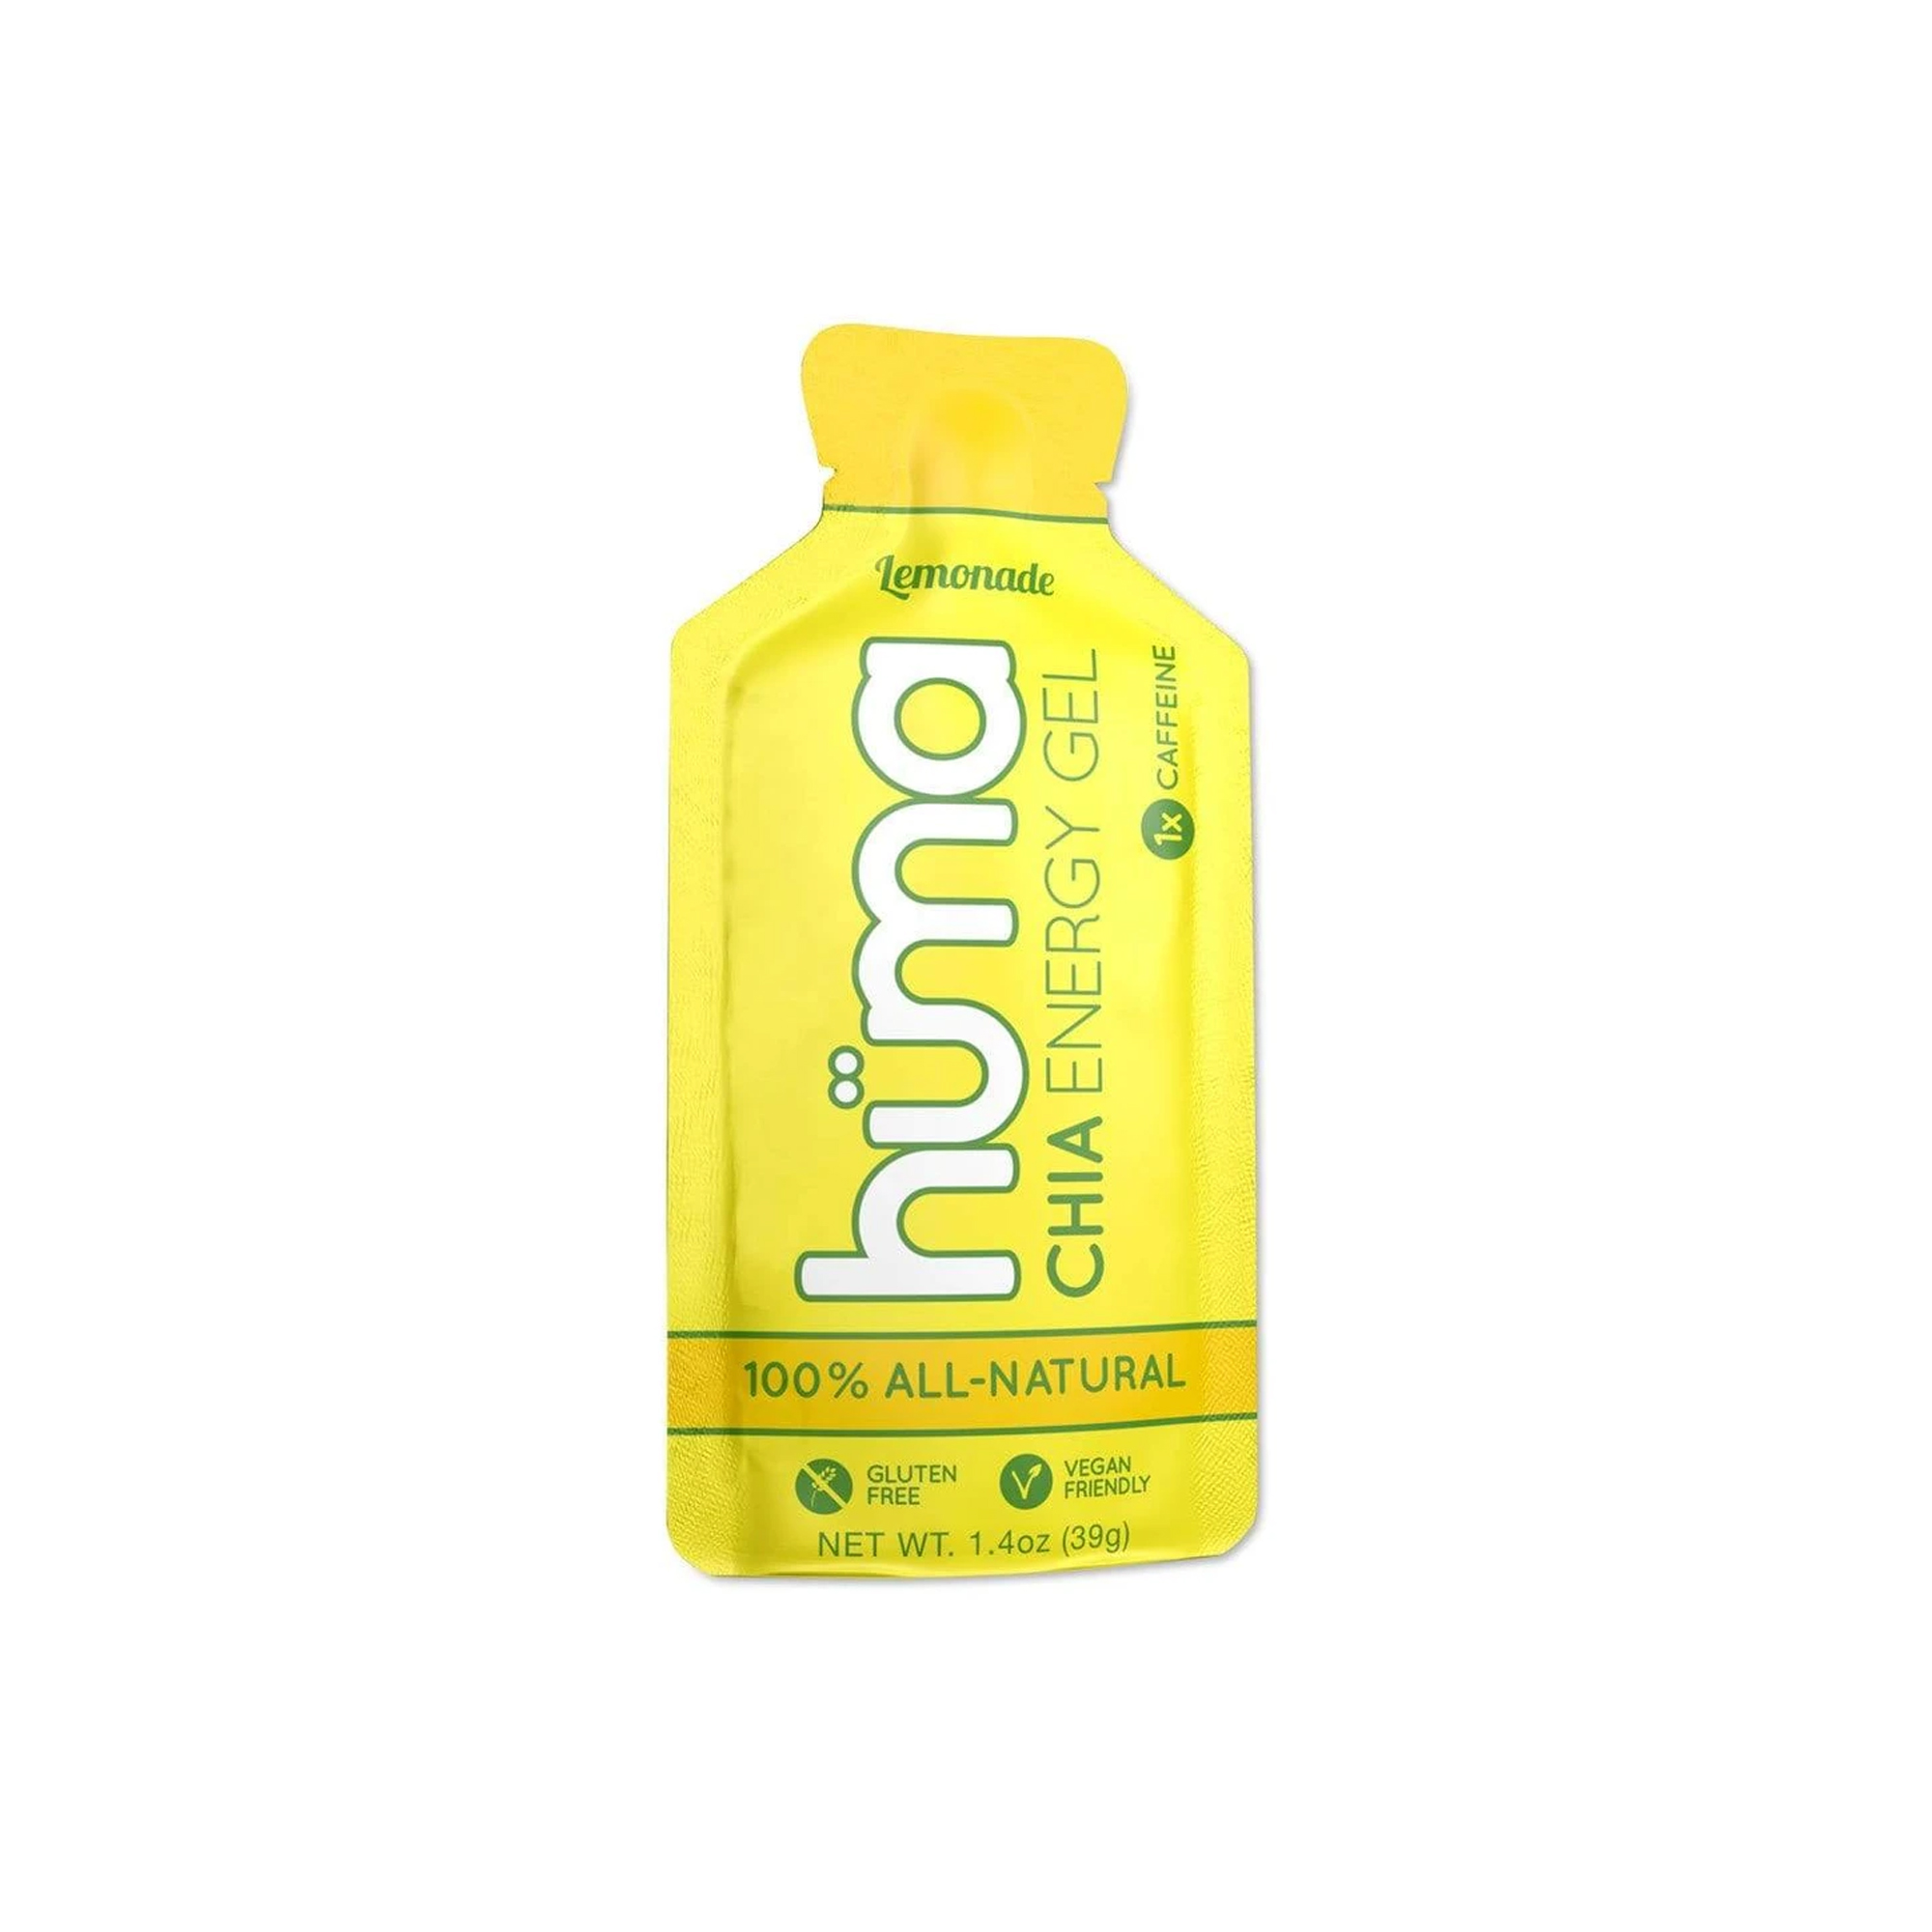 Hüma - Chia Energy Gel Lemonade 1x Caffeine